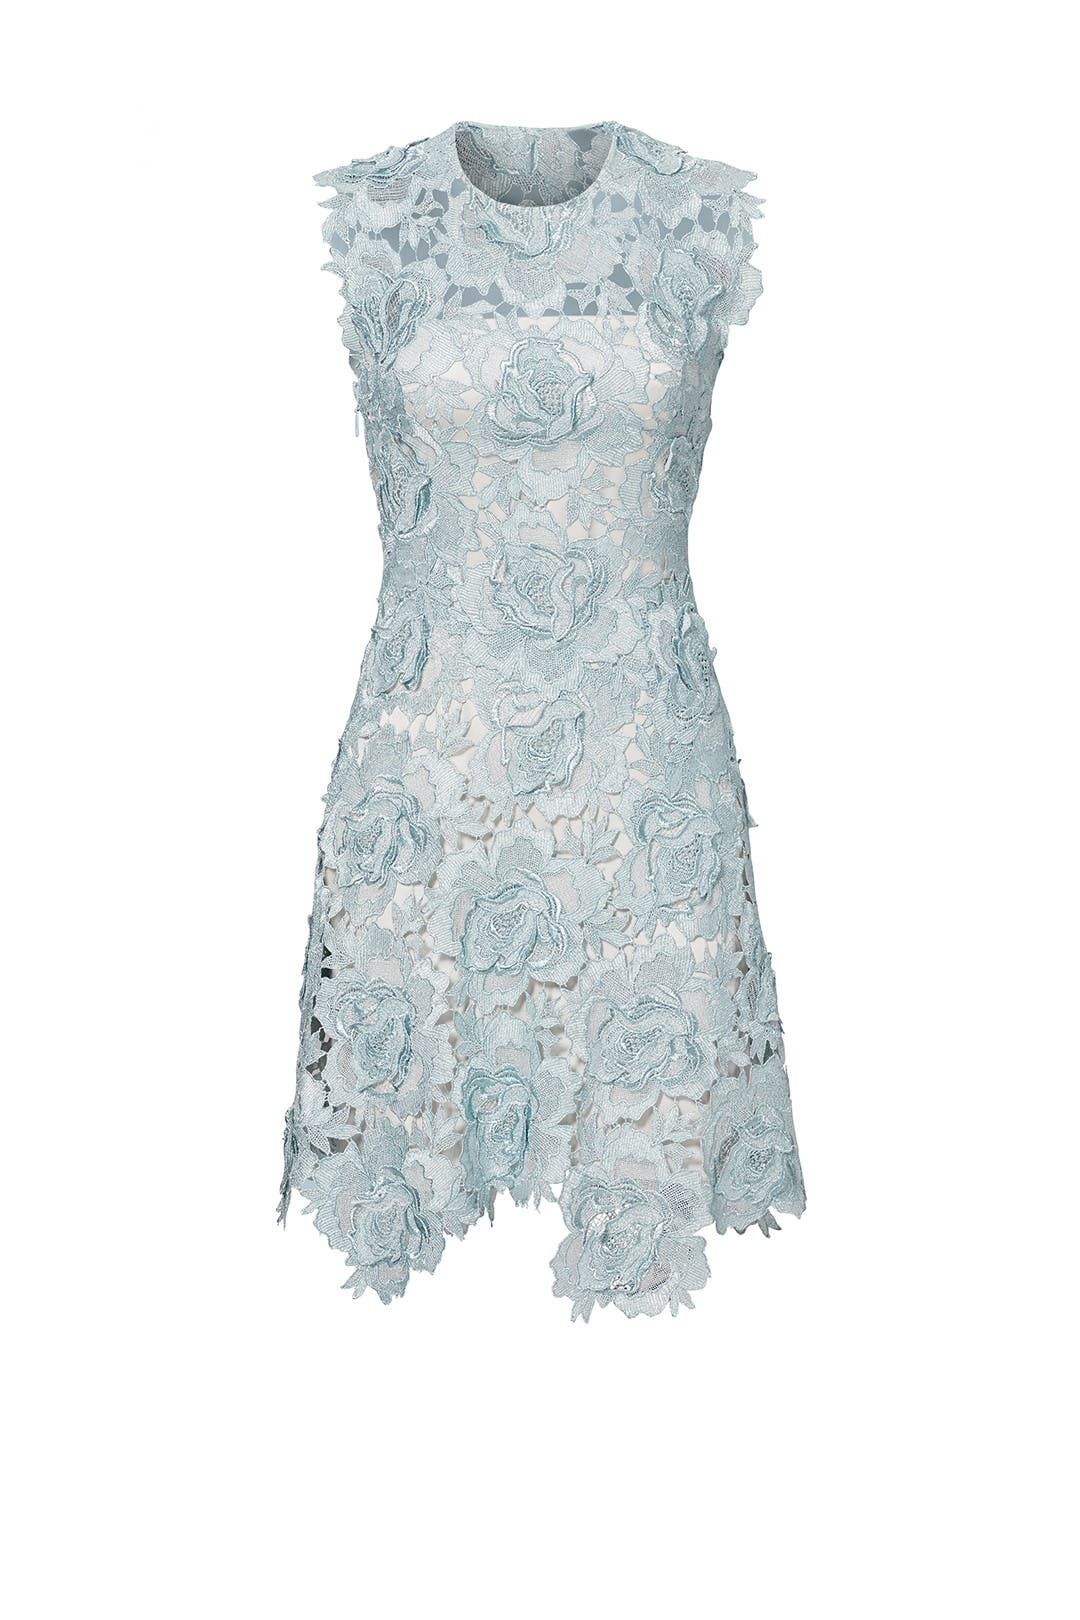 Rent the Runway Catherine Deane Blue Lace Dress